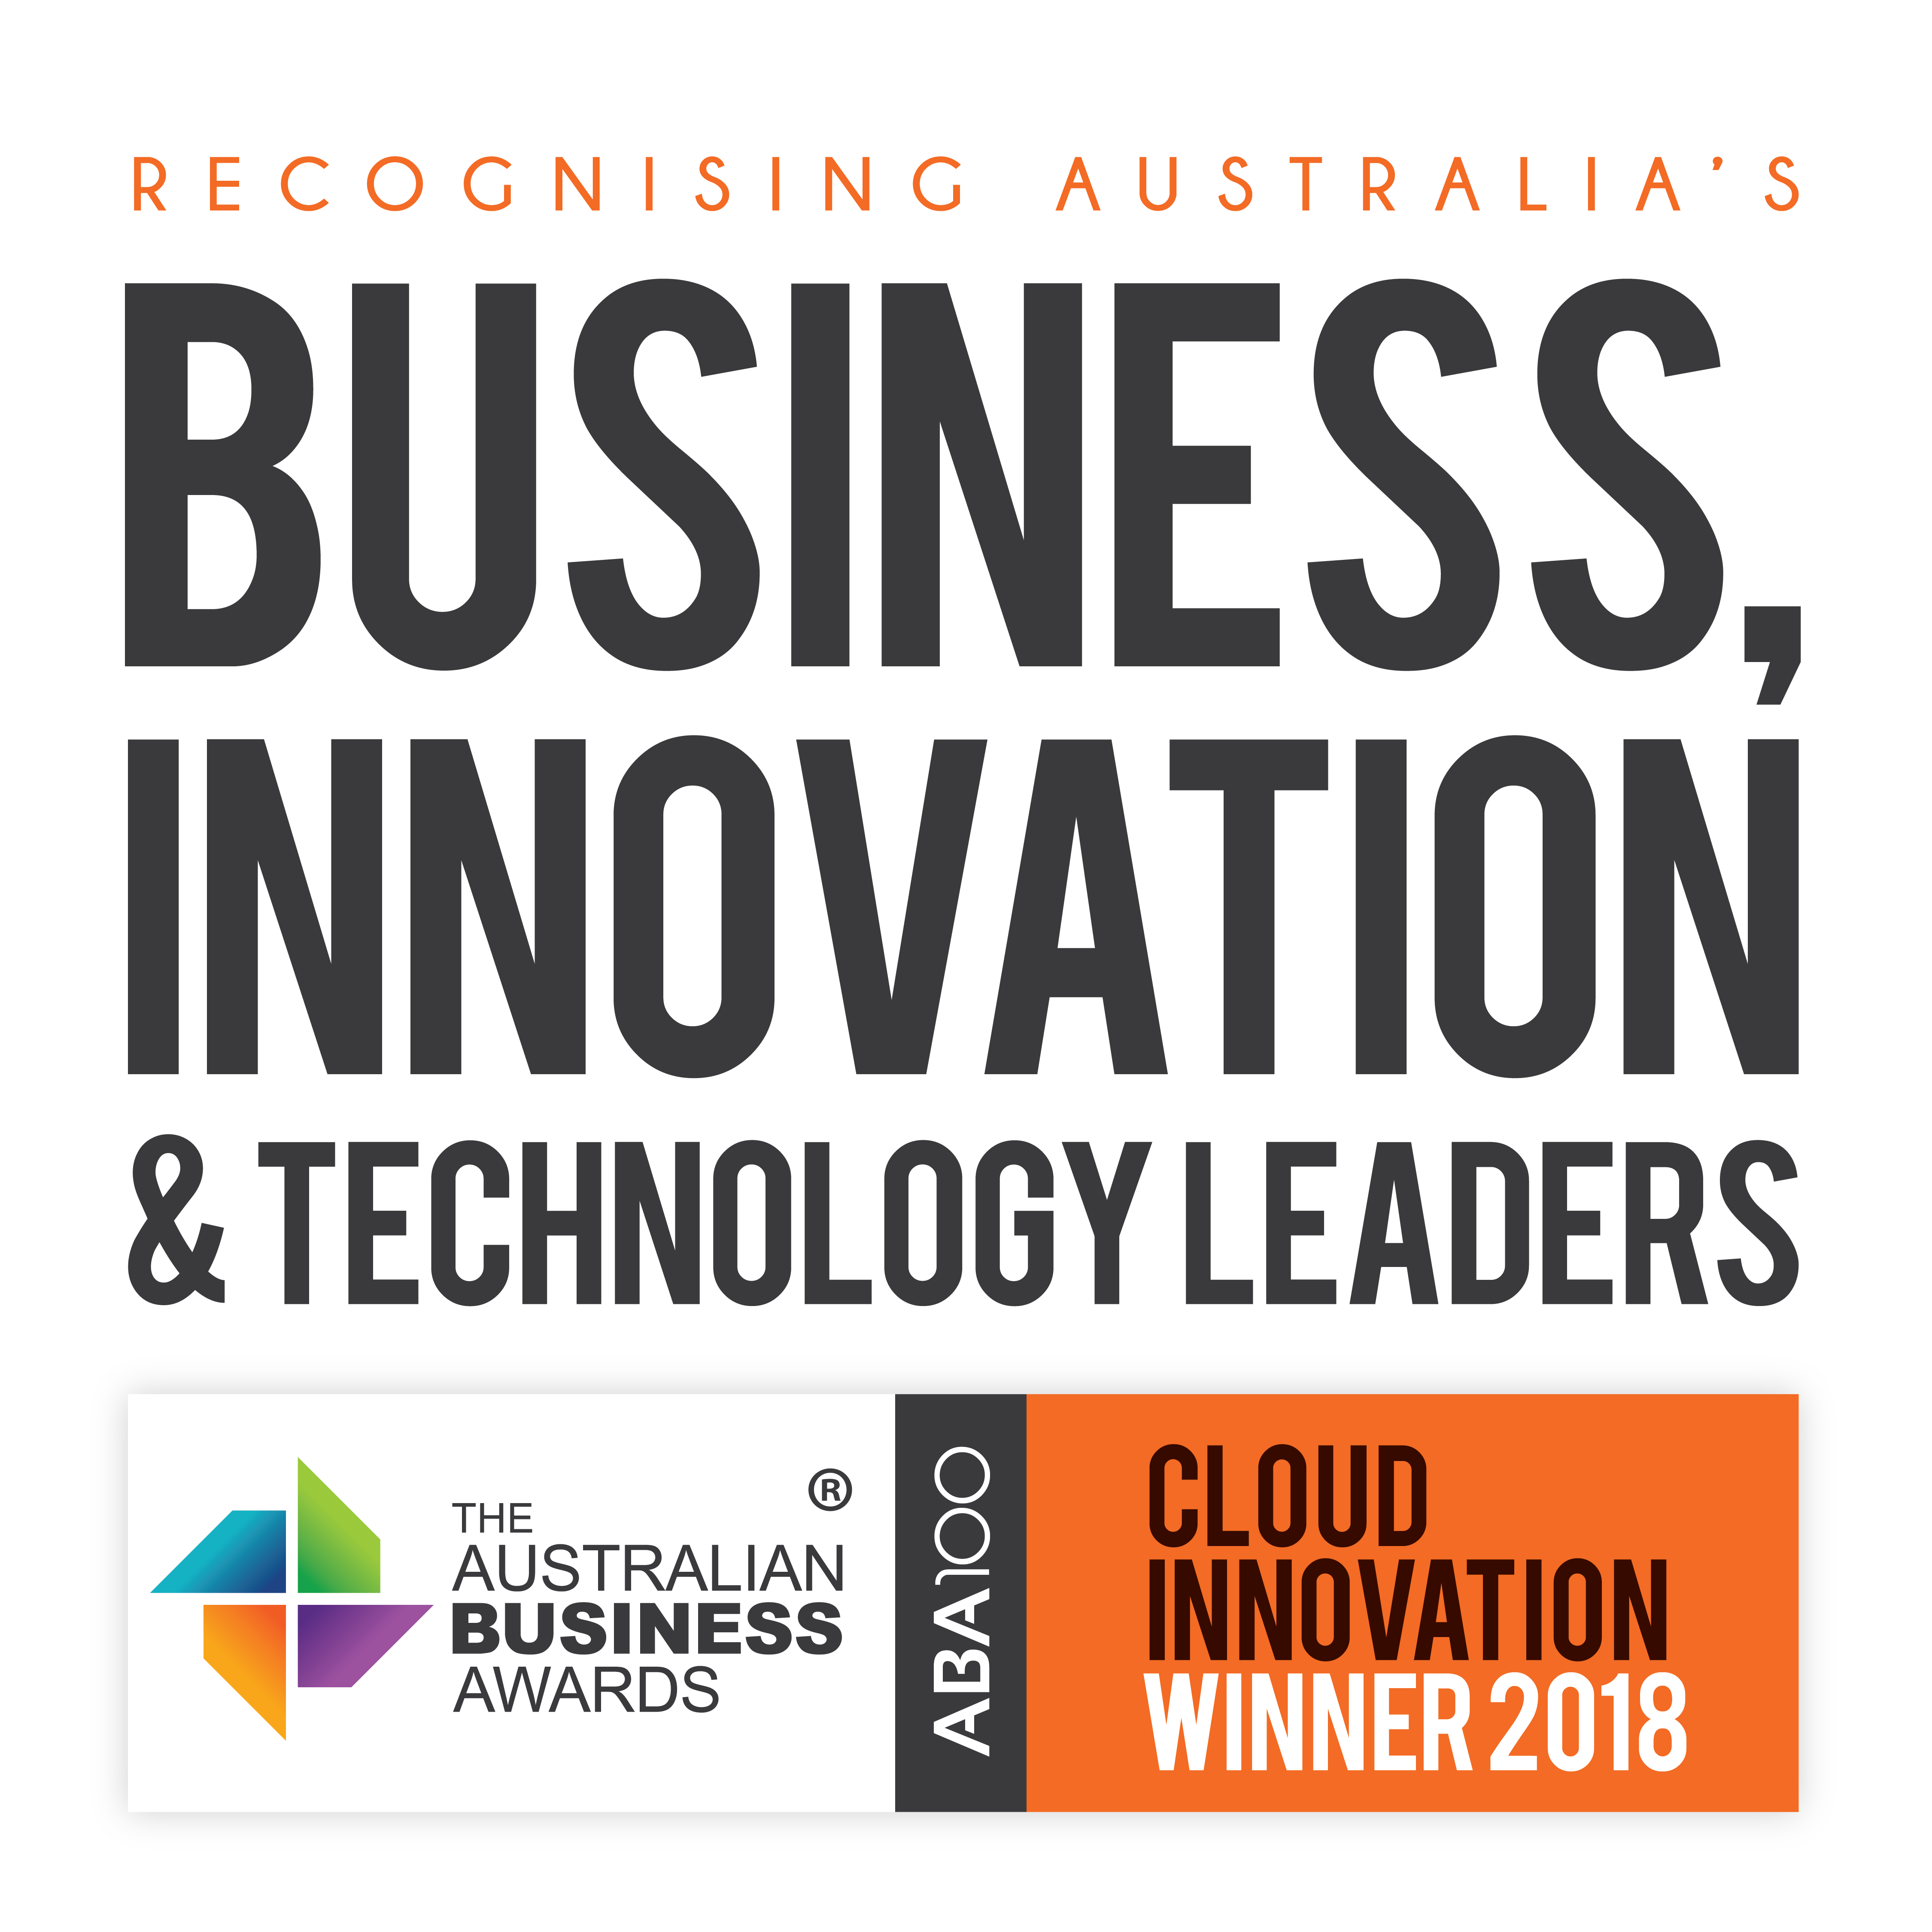 Donesafe is the award winning cloud innovation technology leader